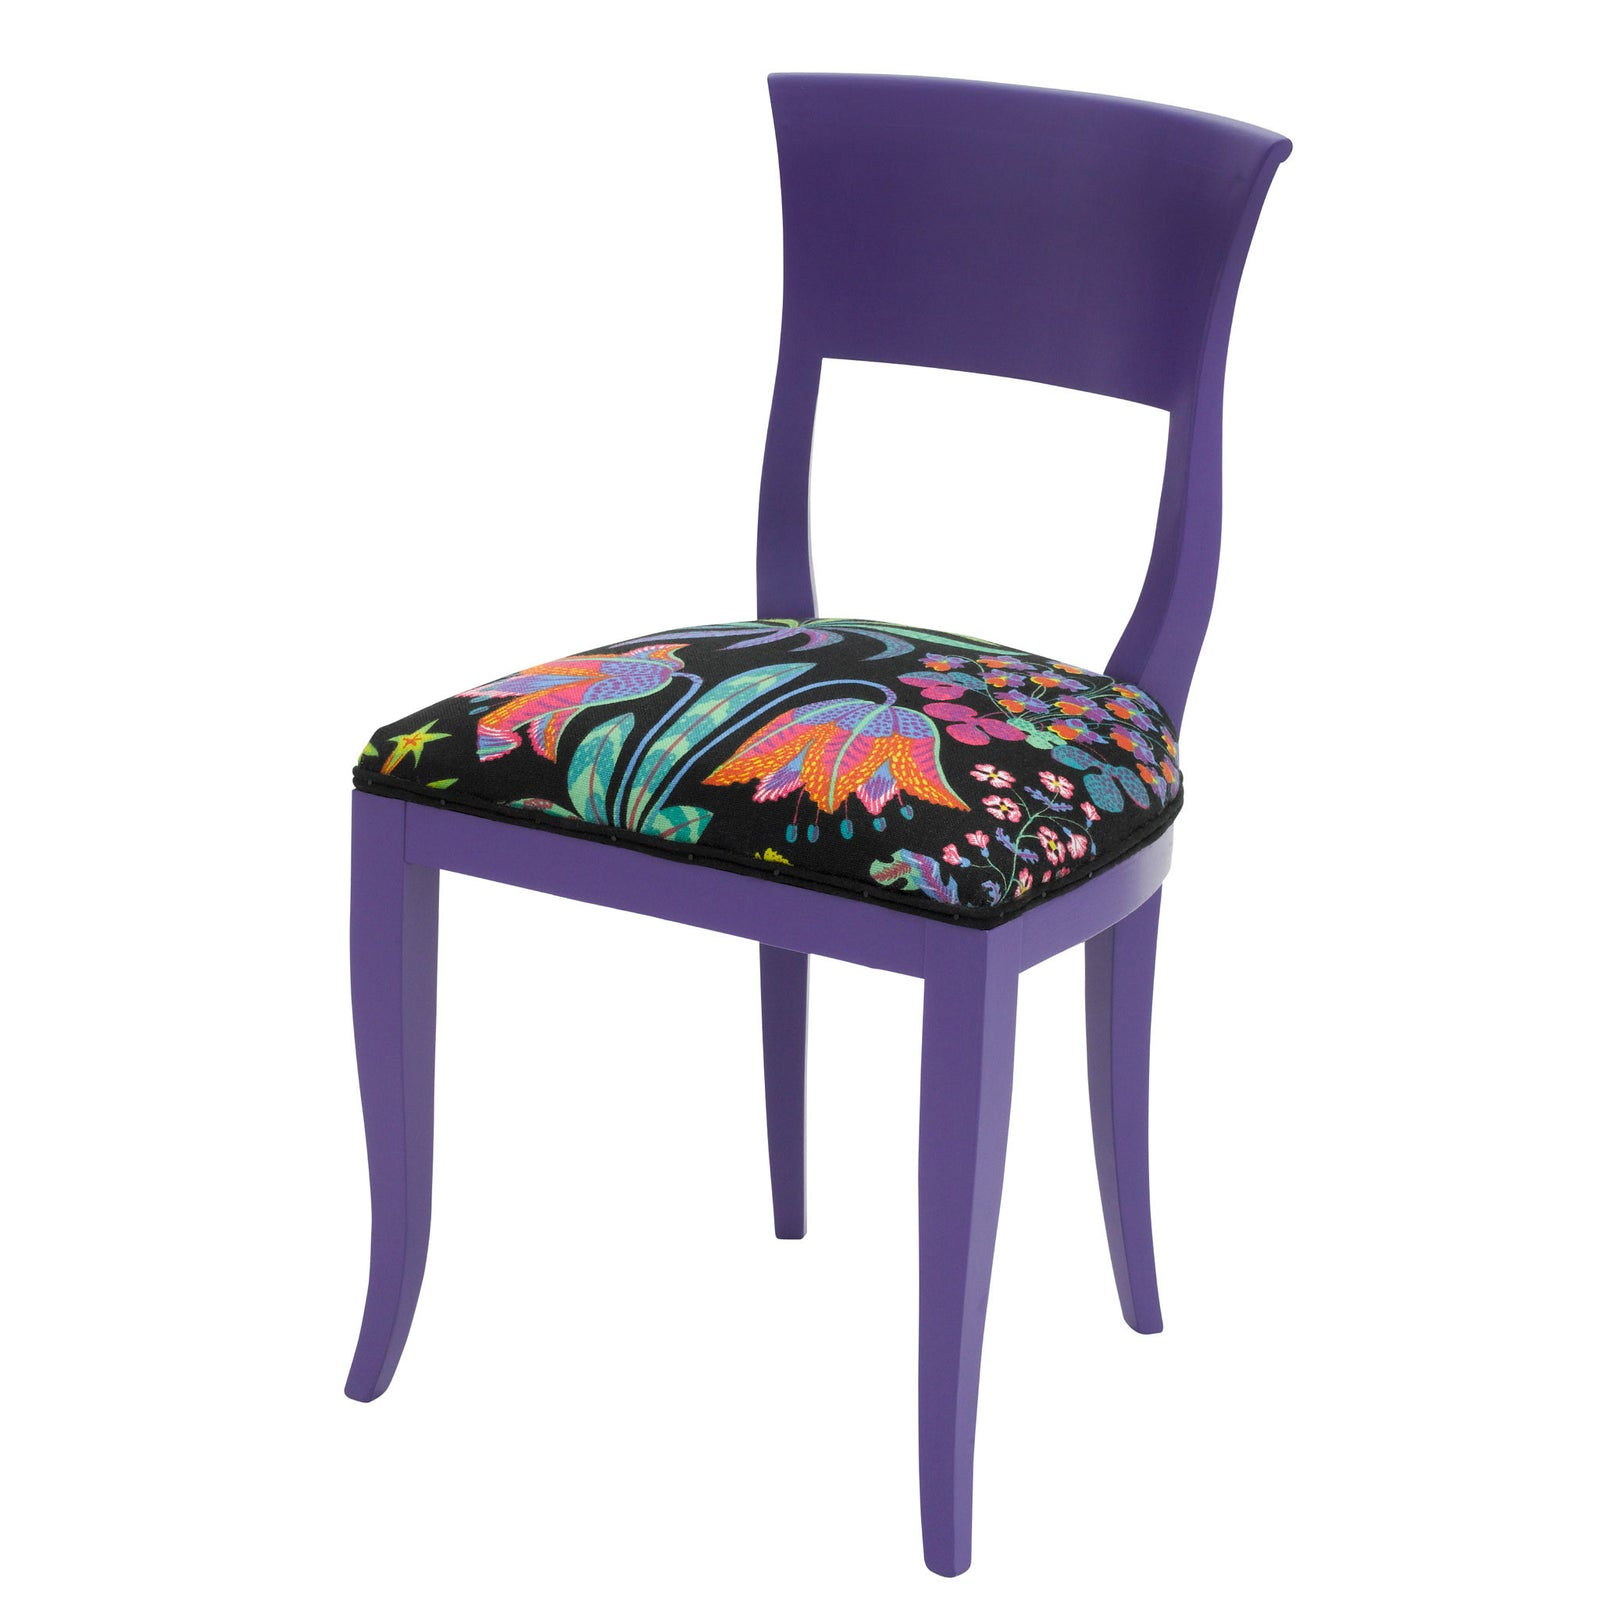 The Kate designer dining chair upholstered in Josef Frank's Under Ekvatorn print and finished in purple heart egg shell.